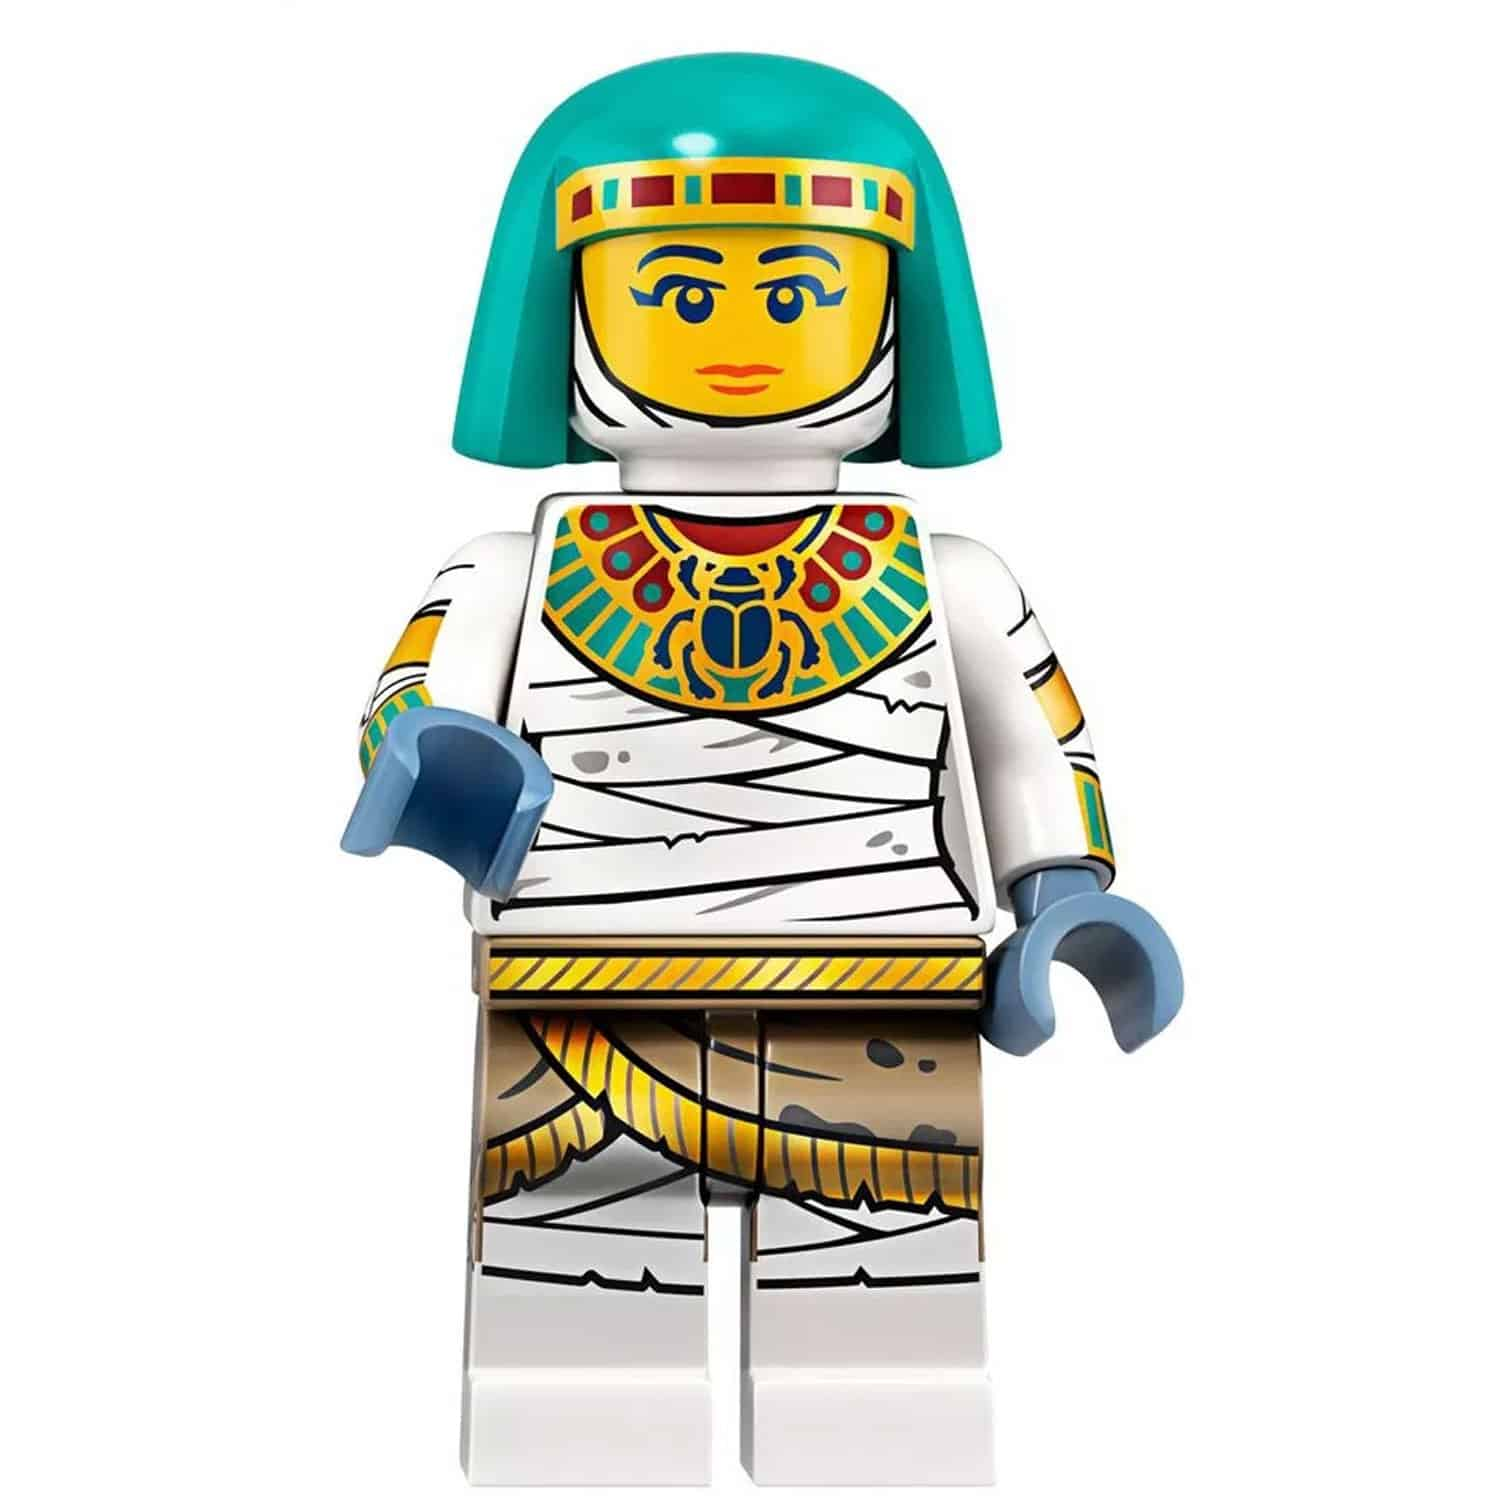 LEGO Mummy Minifigure with Scoprion – Series 19 CMF